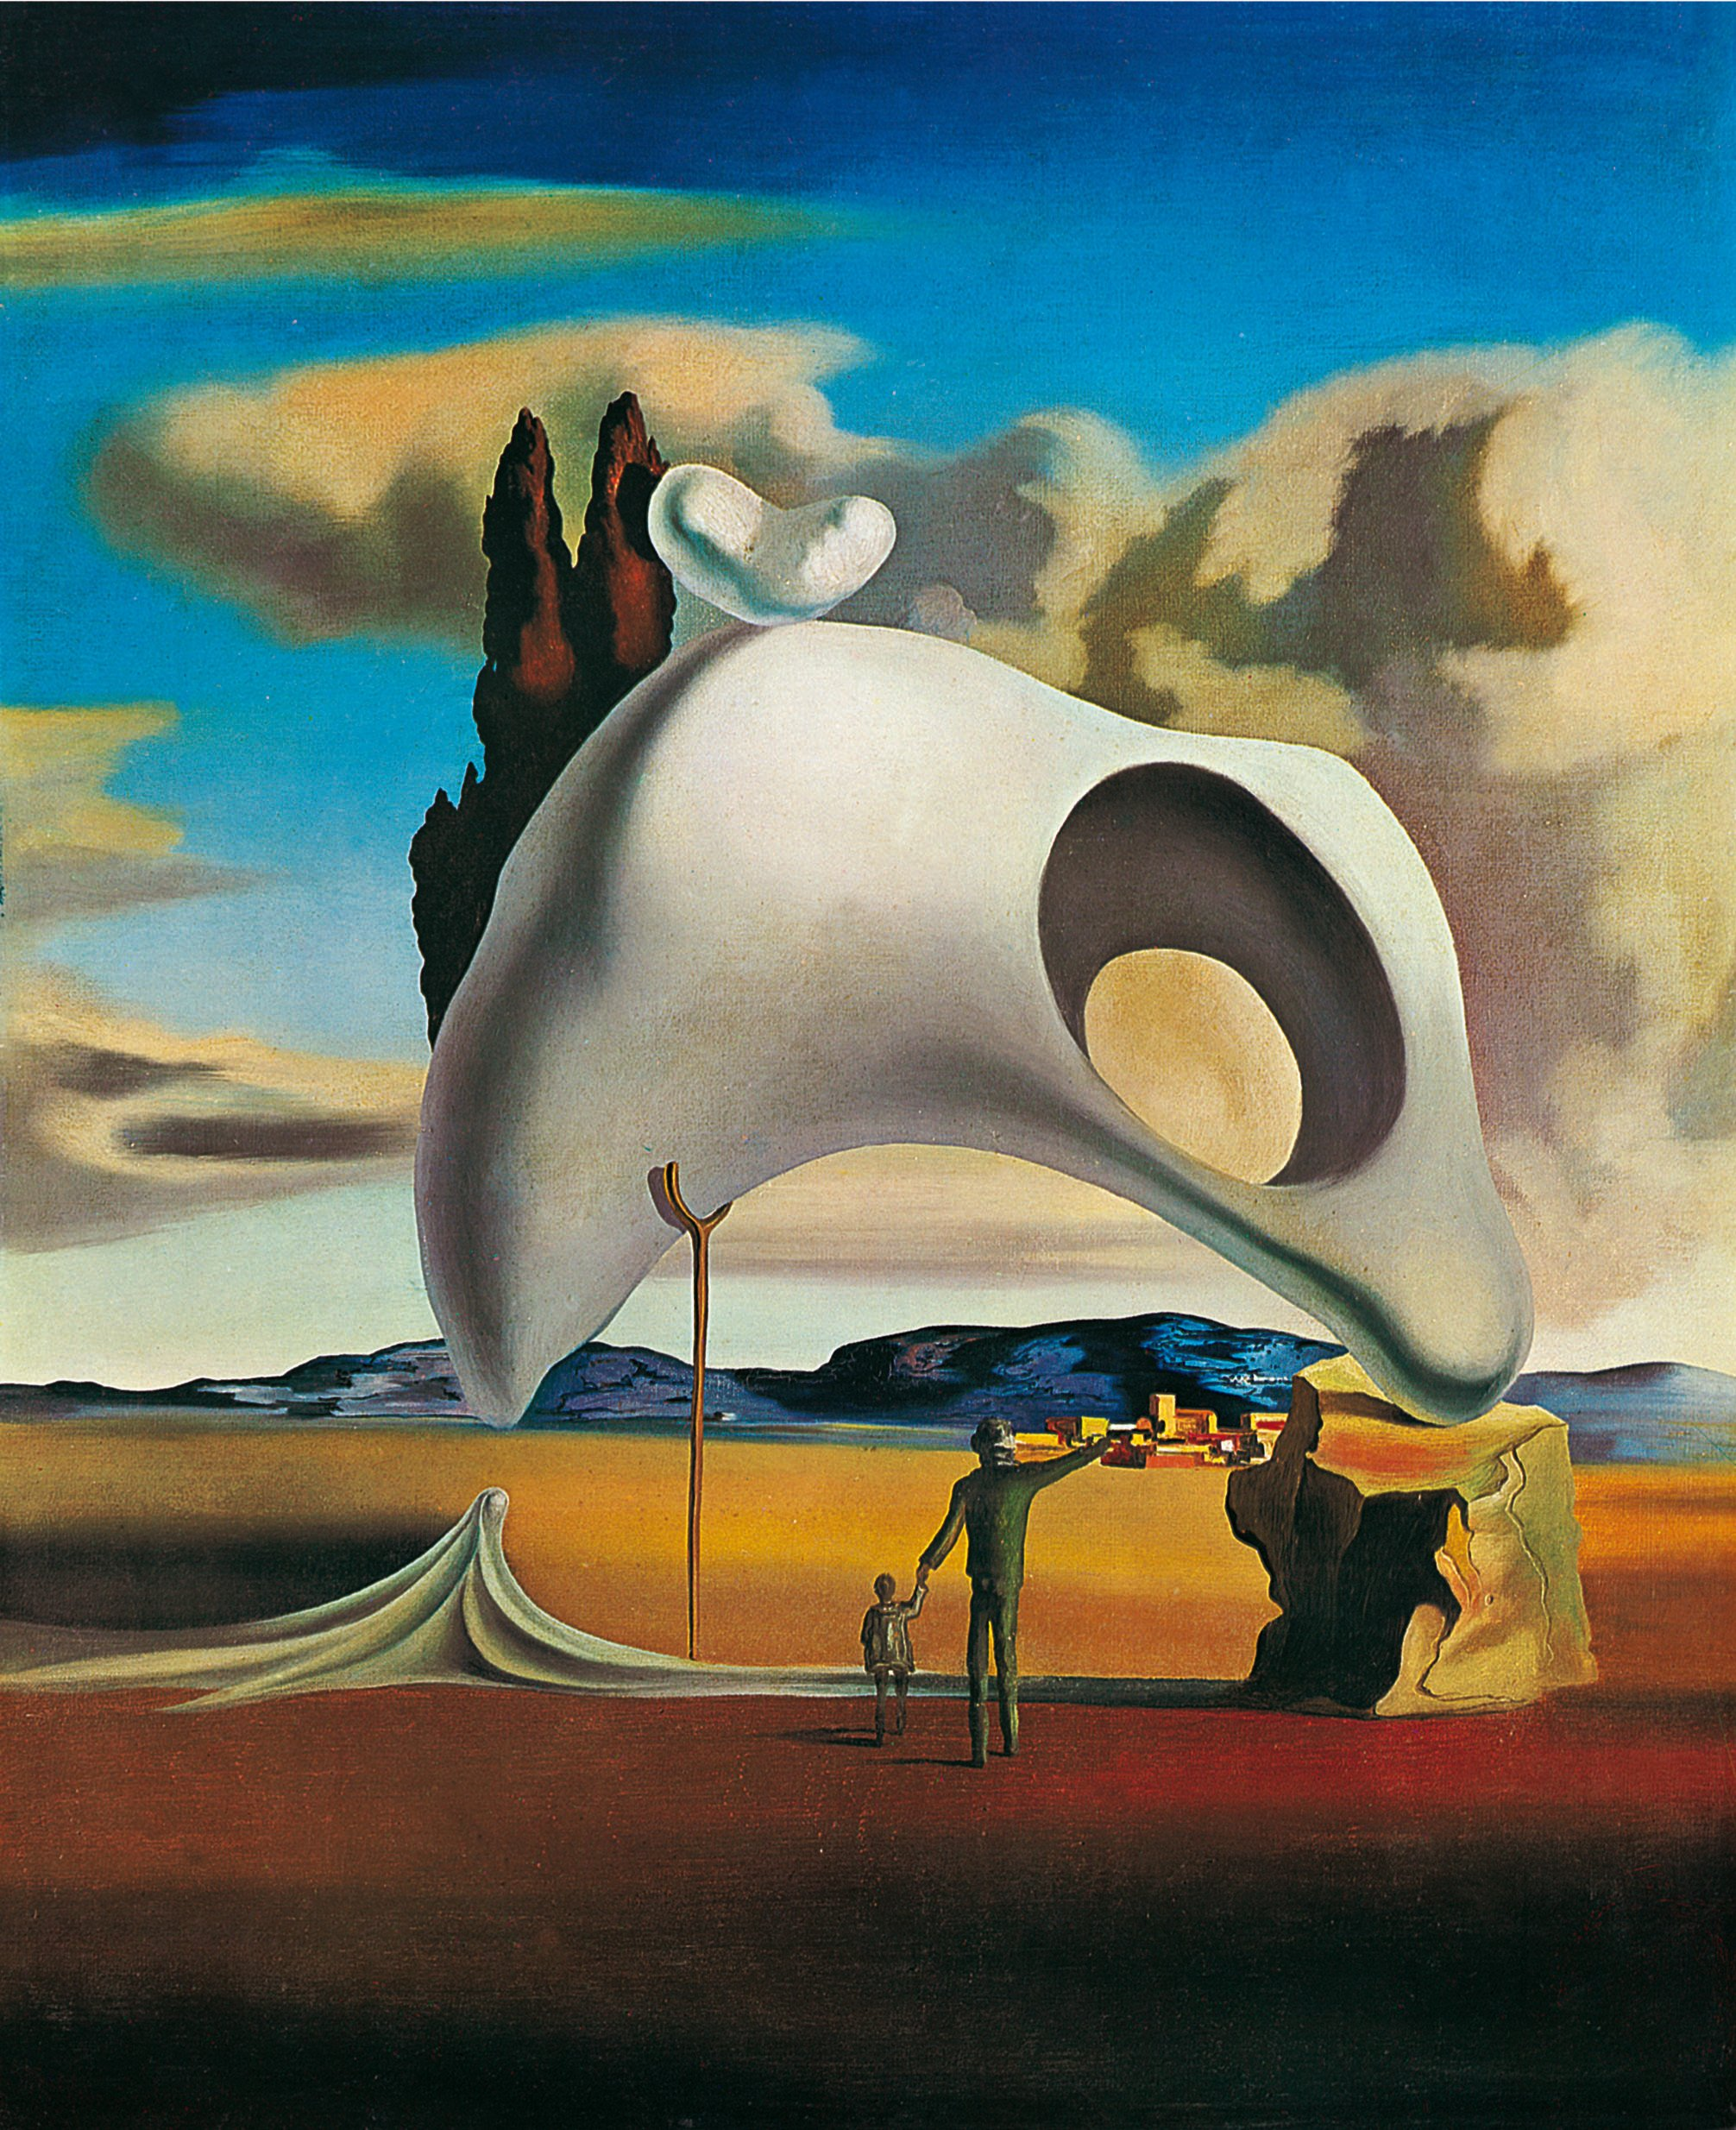 Très salvador dali painting - Happycart.co LC46